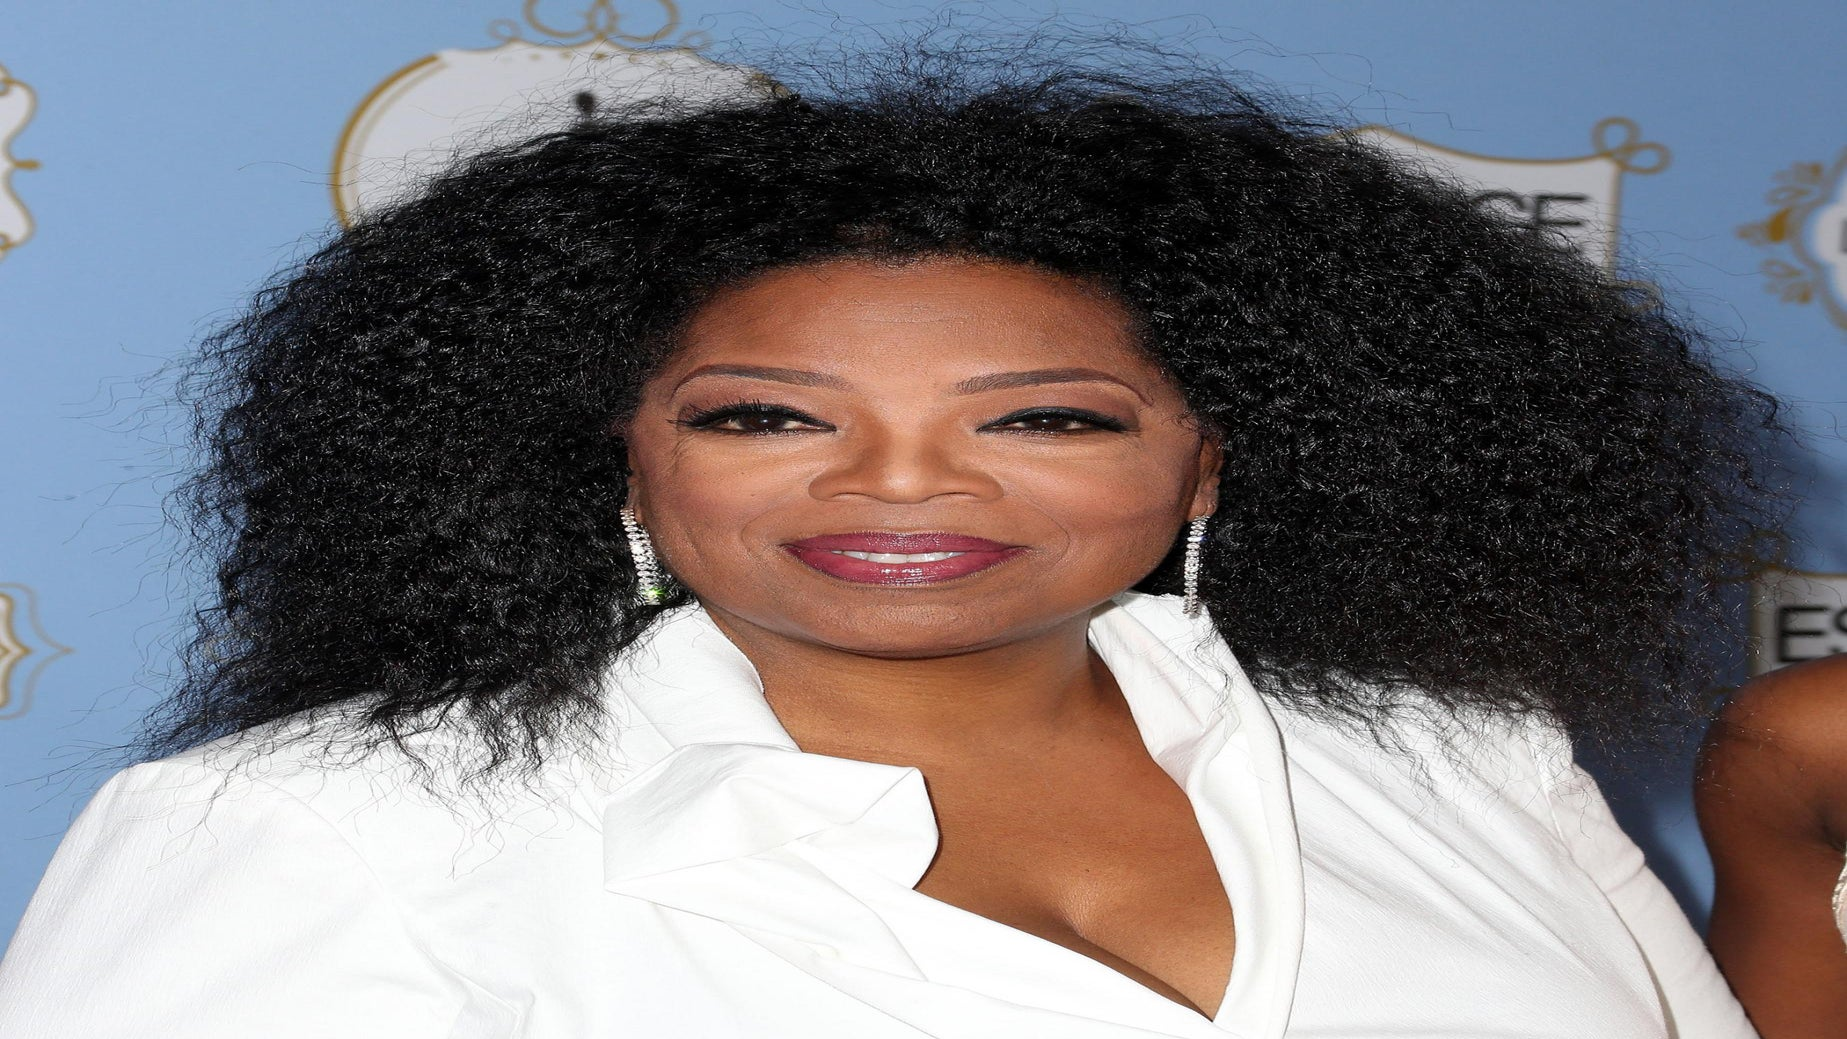 EXCLUSIVE: Oprah Winfrey On What it Means to Be a Powerful Black Woman in Hollywood